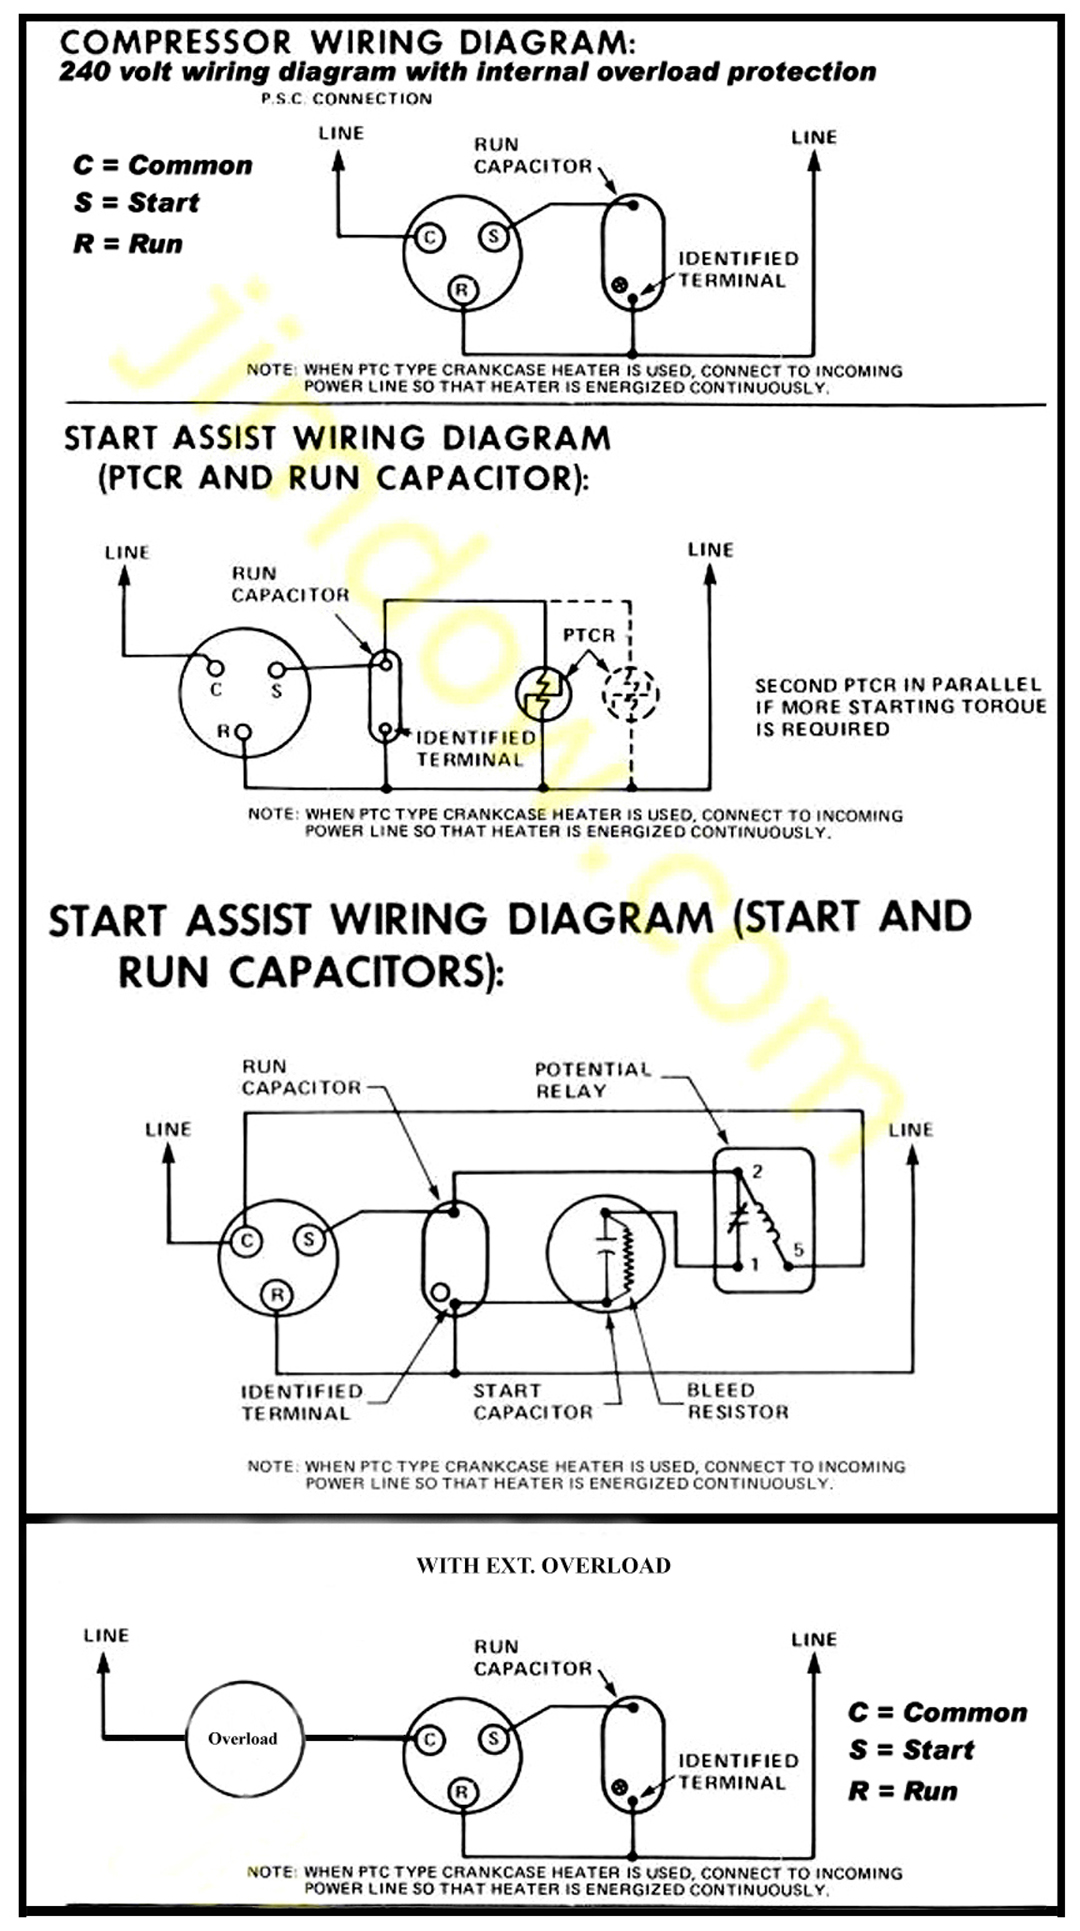 Home Air Conditioning Compressor Wiring Diagram Data Window Unit Conditioner Diagrams General Spud Cannon Related Speedaire